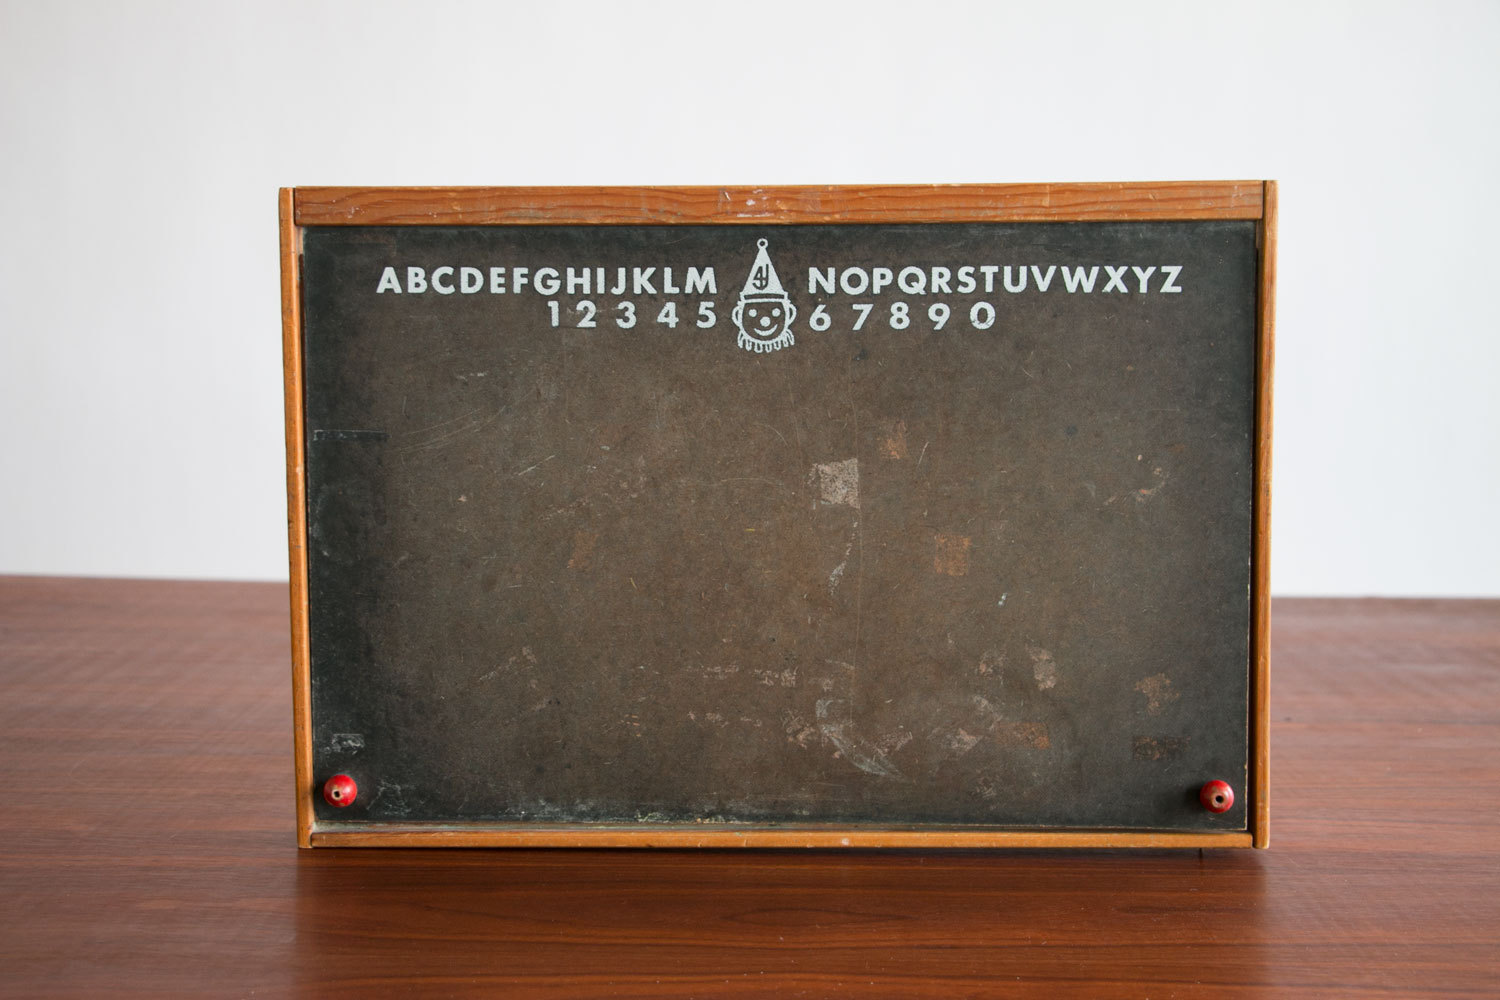 Vintage 1950's Children's Chalkboard Box w/ Alphabet & Clown Logo - Great Decorative Piece, Spice Rack, Shadow Box, Etc.